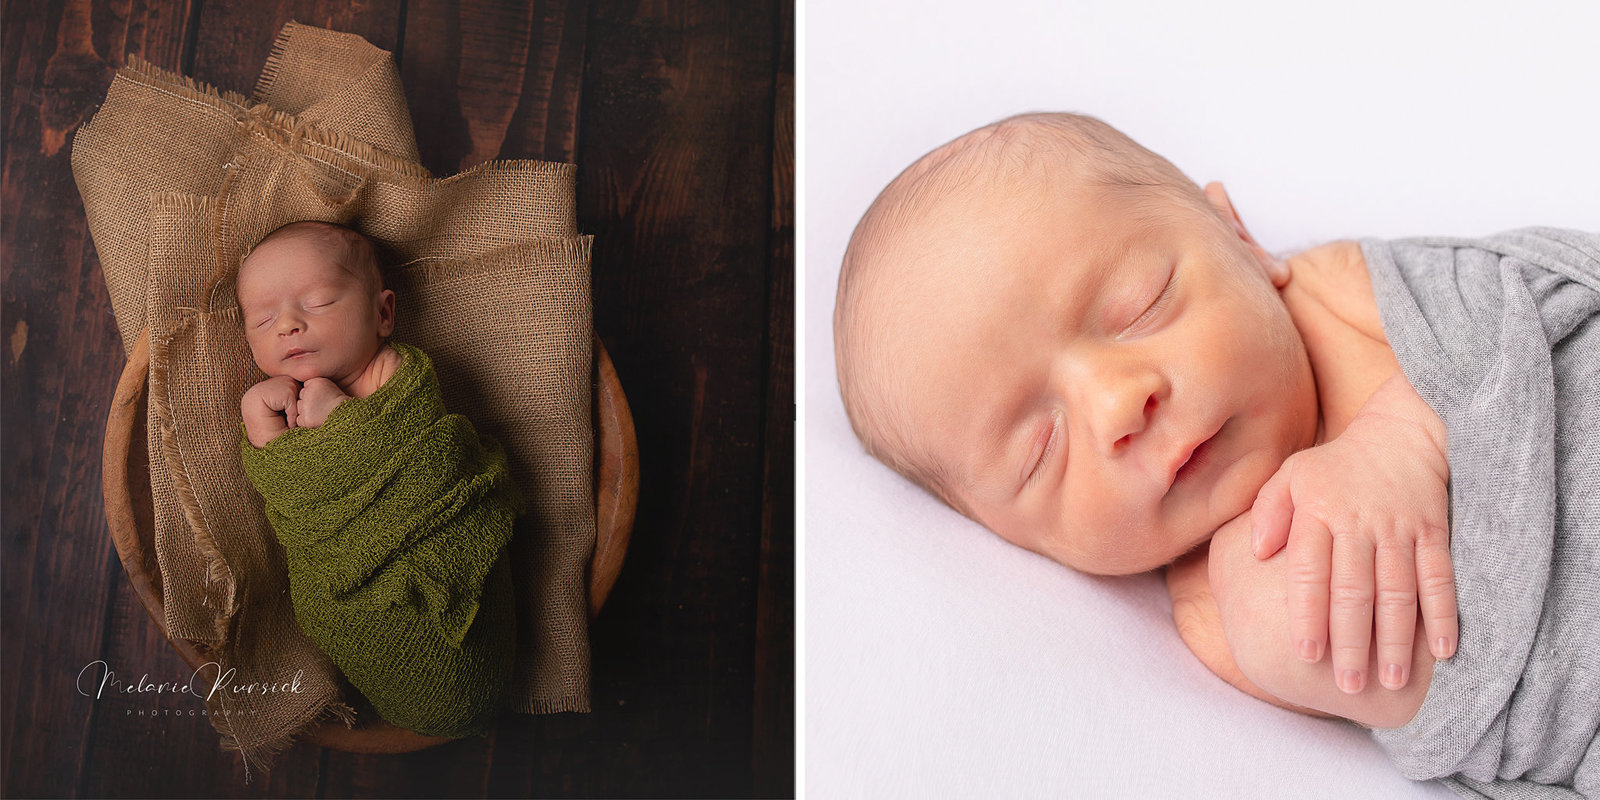 Northeast Arkansas Newborn Photographer Melanie Runsick